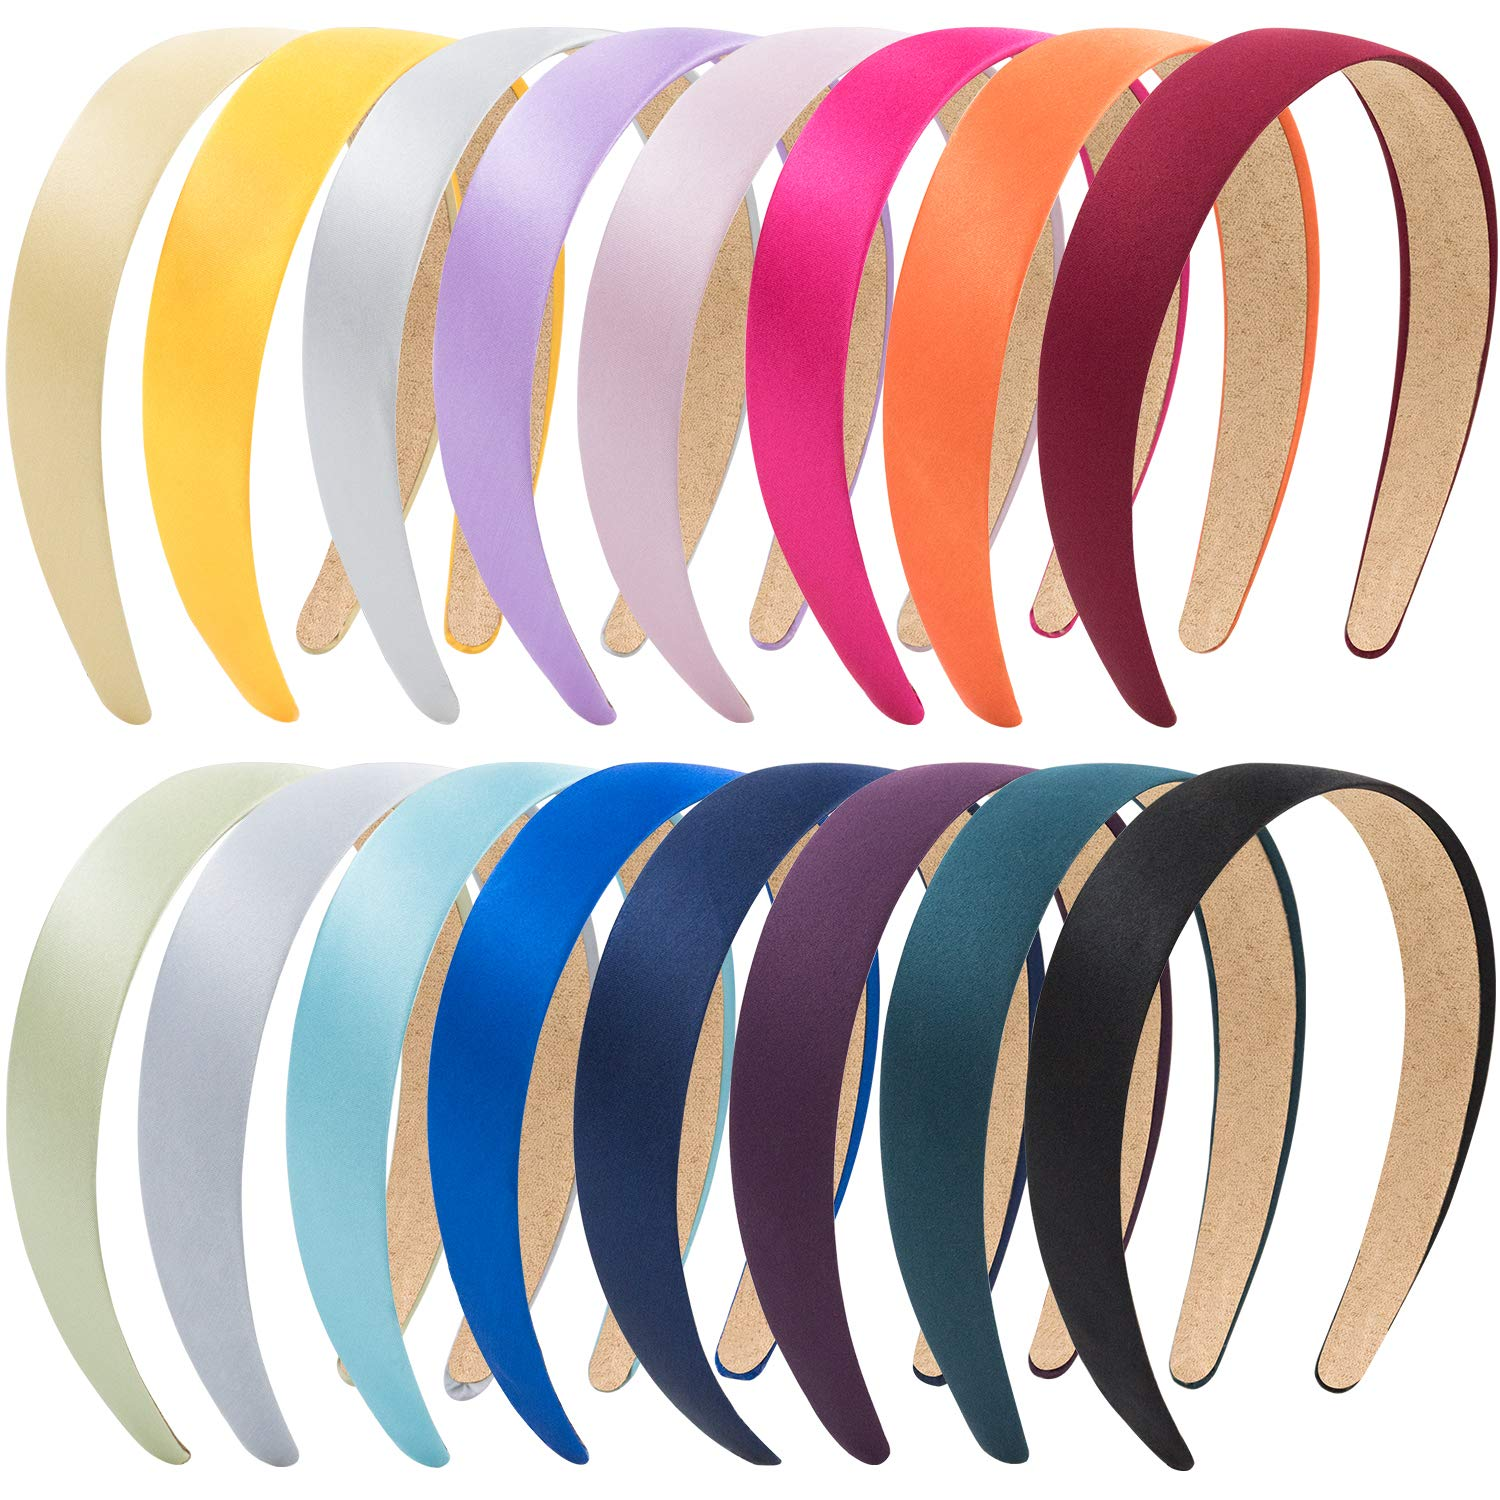 18 x Narrow satin Alice bands//headbands in silver only